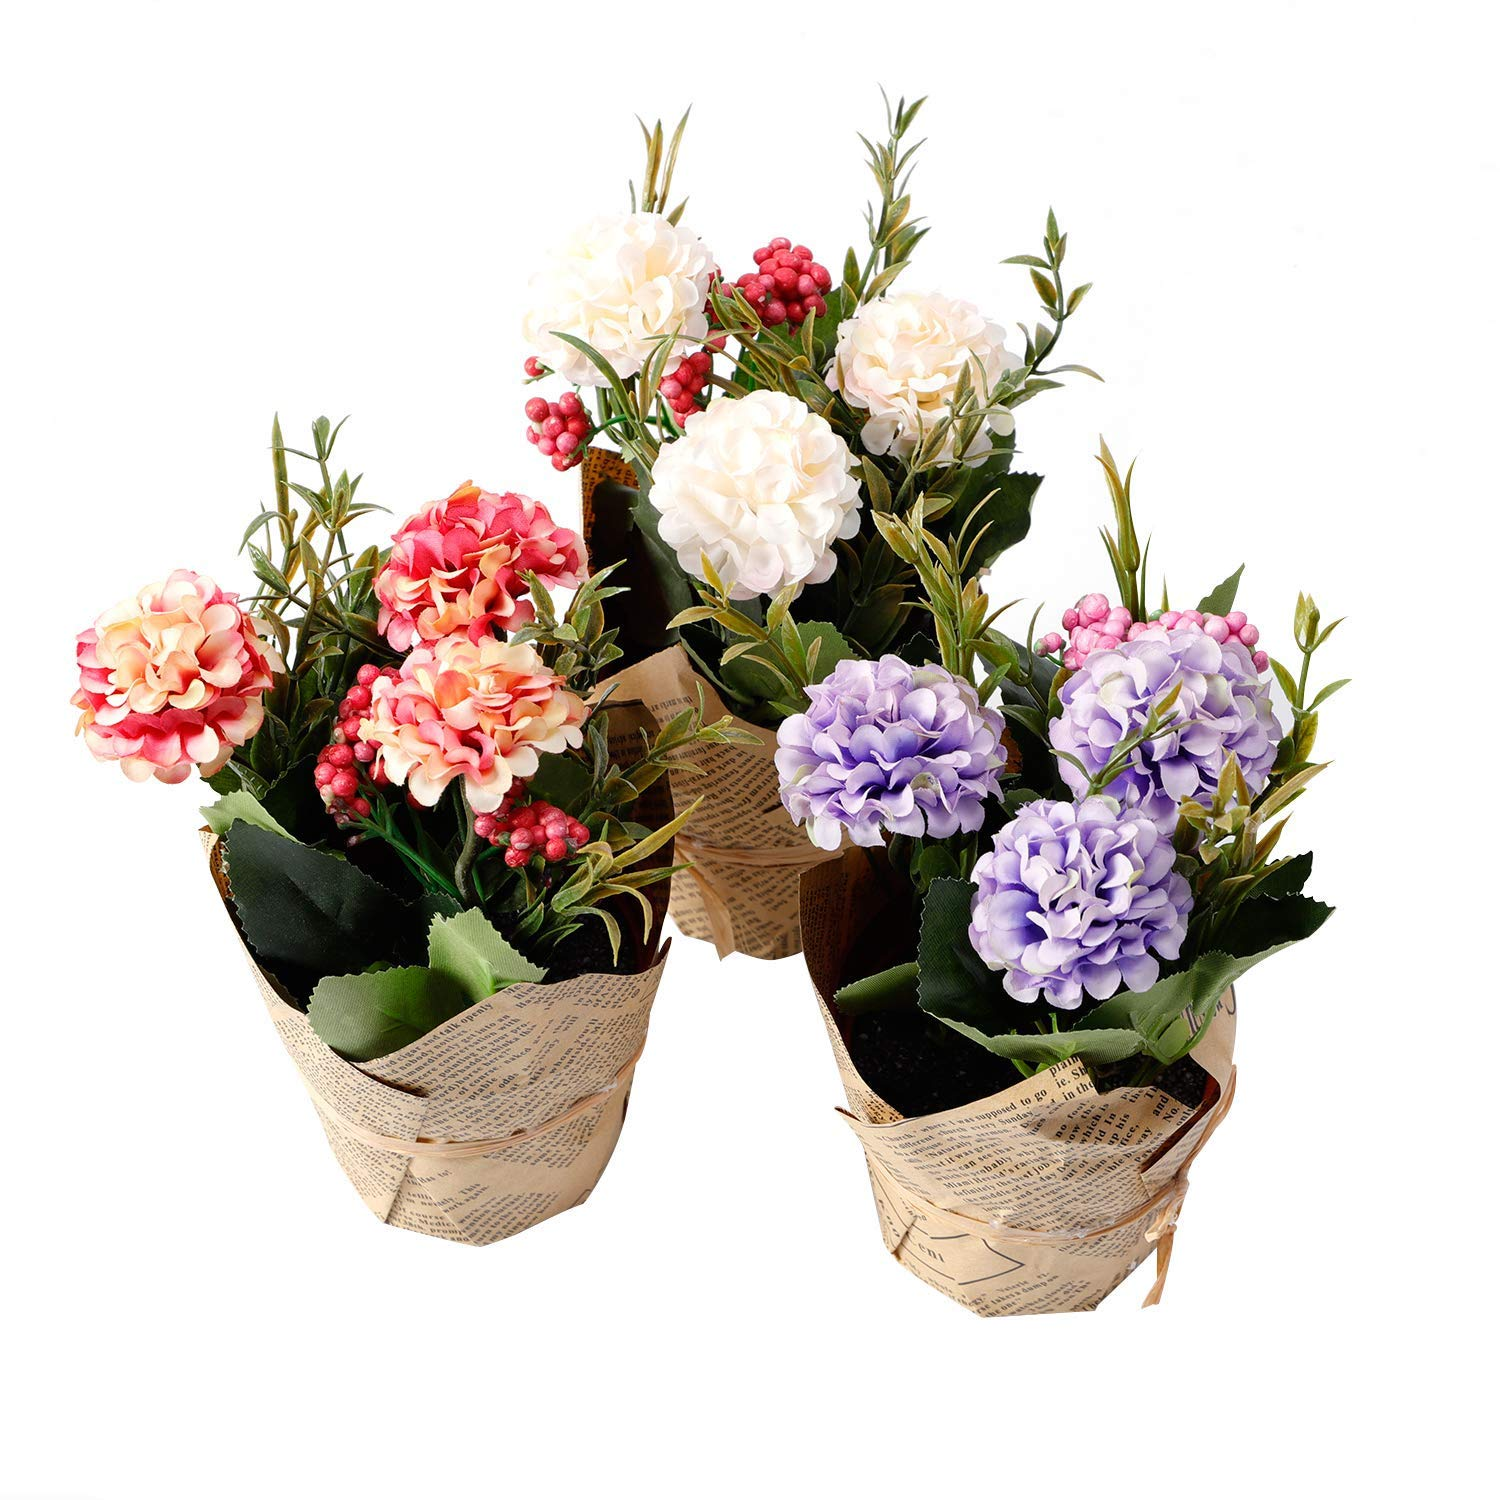 225 & The Bloom Times Set of 3 Artificial Flowers with Vase Small Fake Hydrangea Arrangement Potted Silk Flower Arrangement in Vase Silk Plants for Home ...